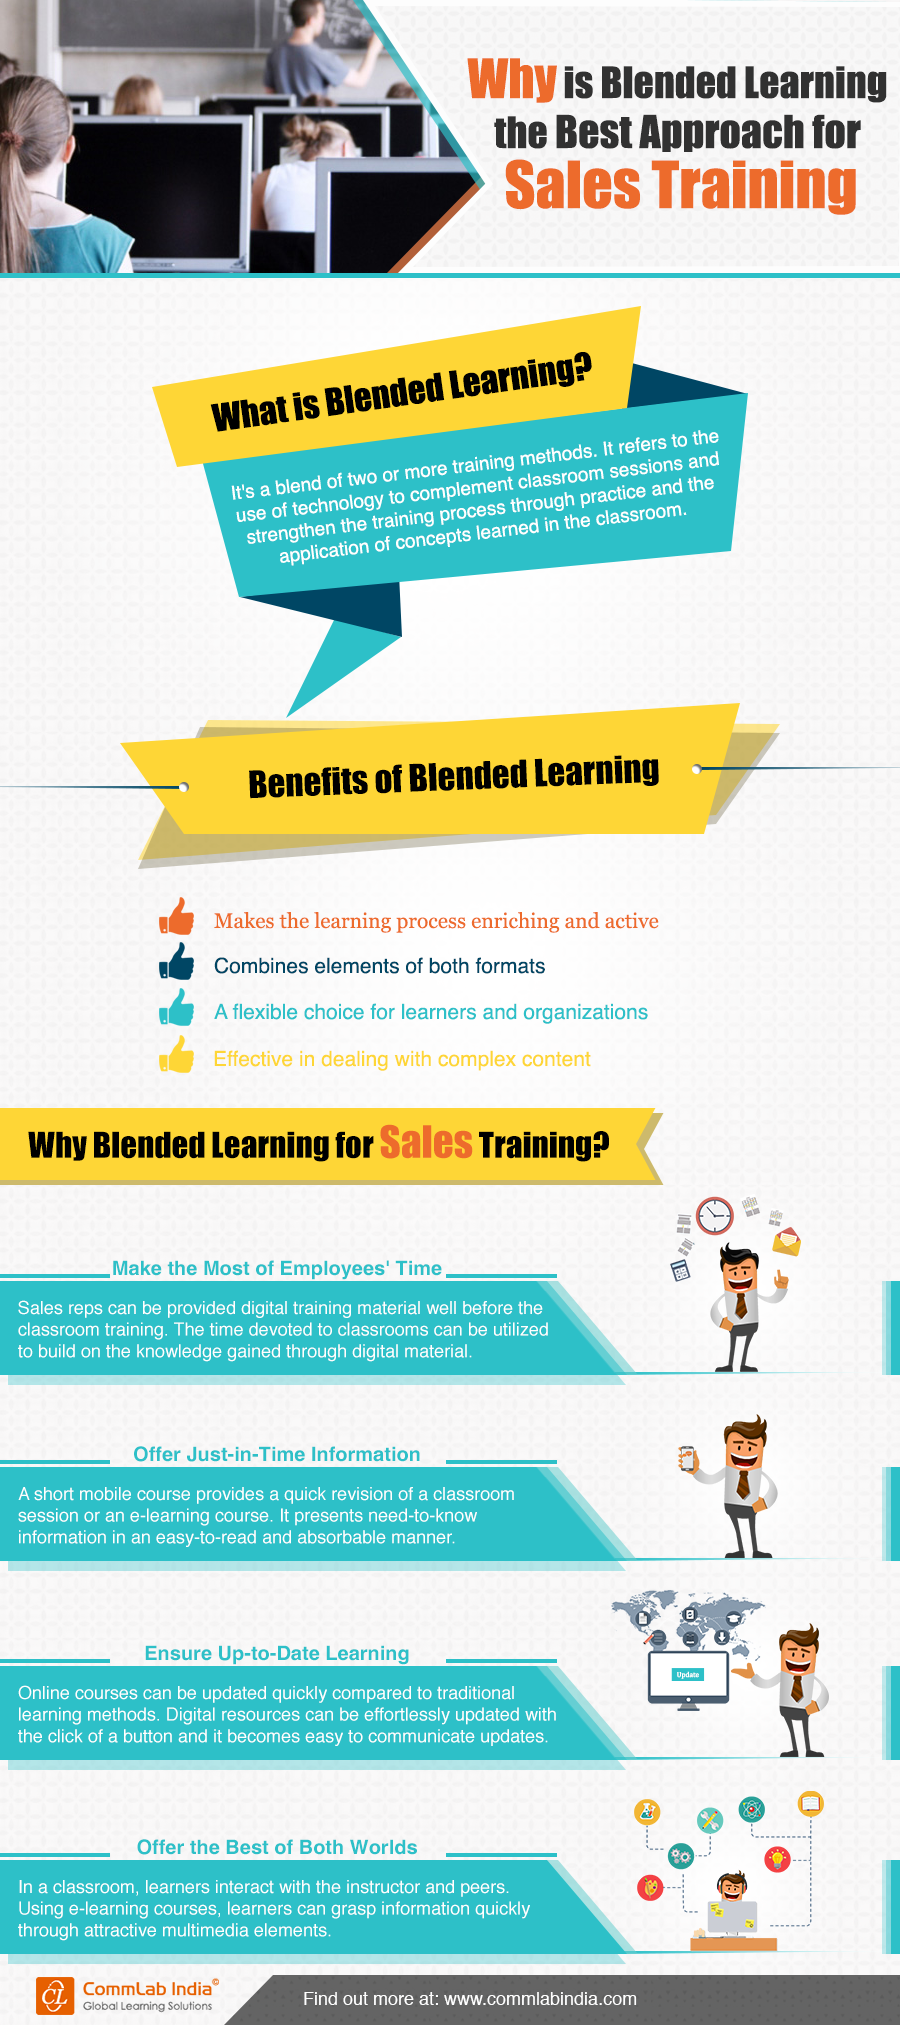 How Blended Learning Can Maximize Learning Output in Sales Training - Infographic